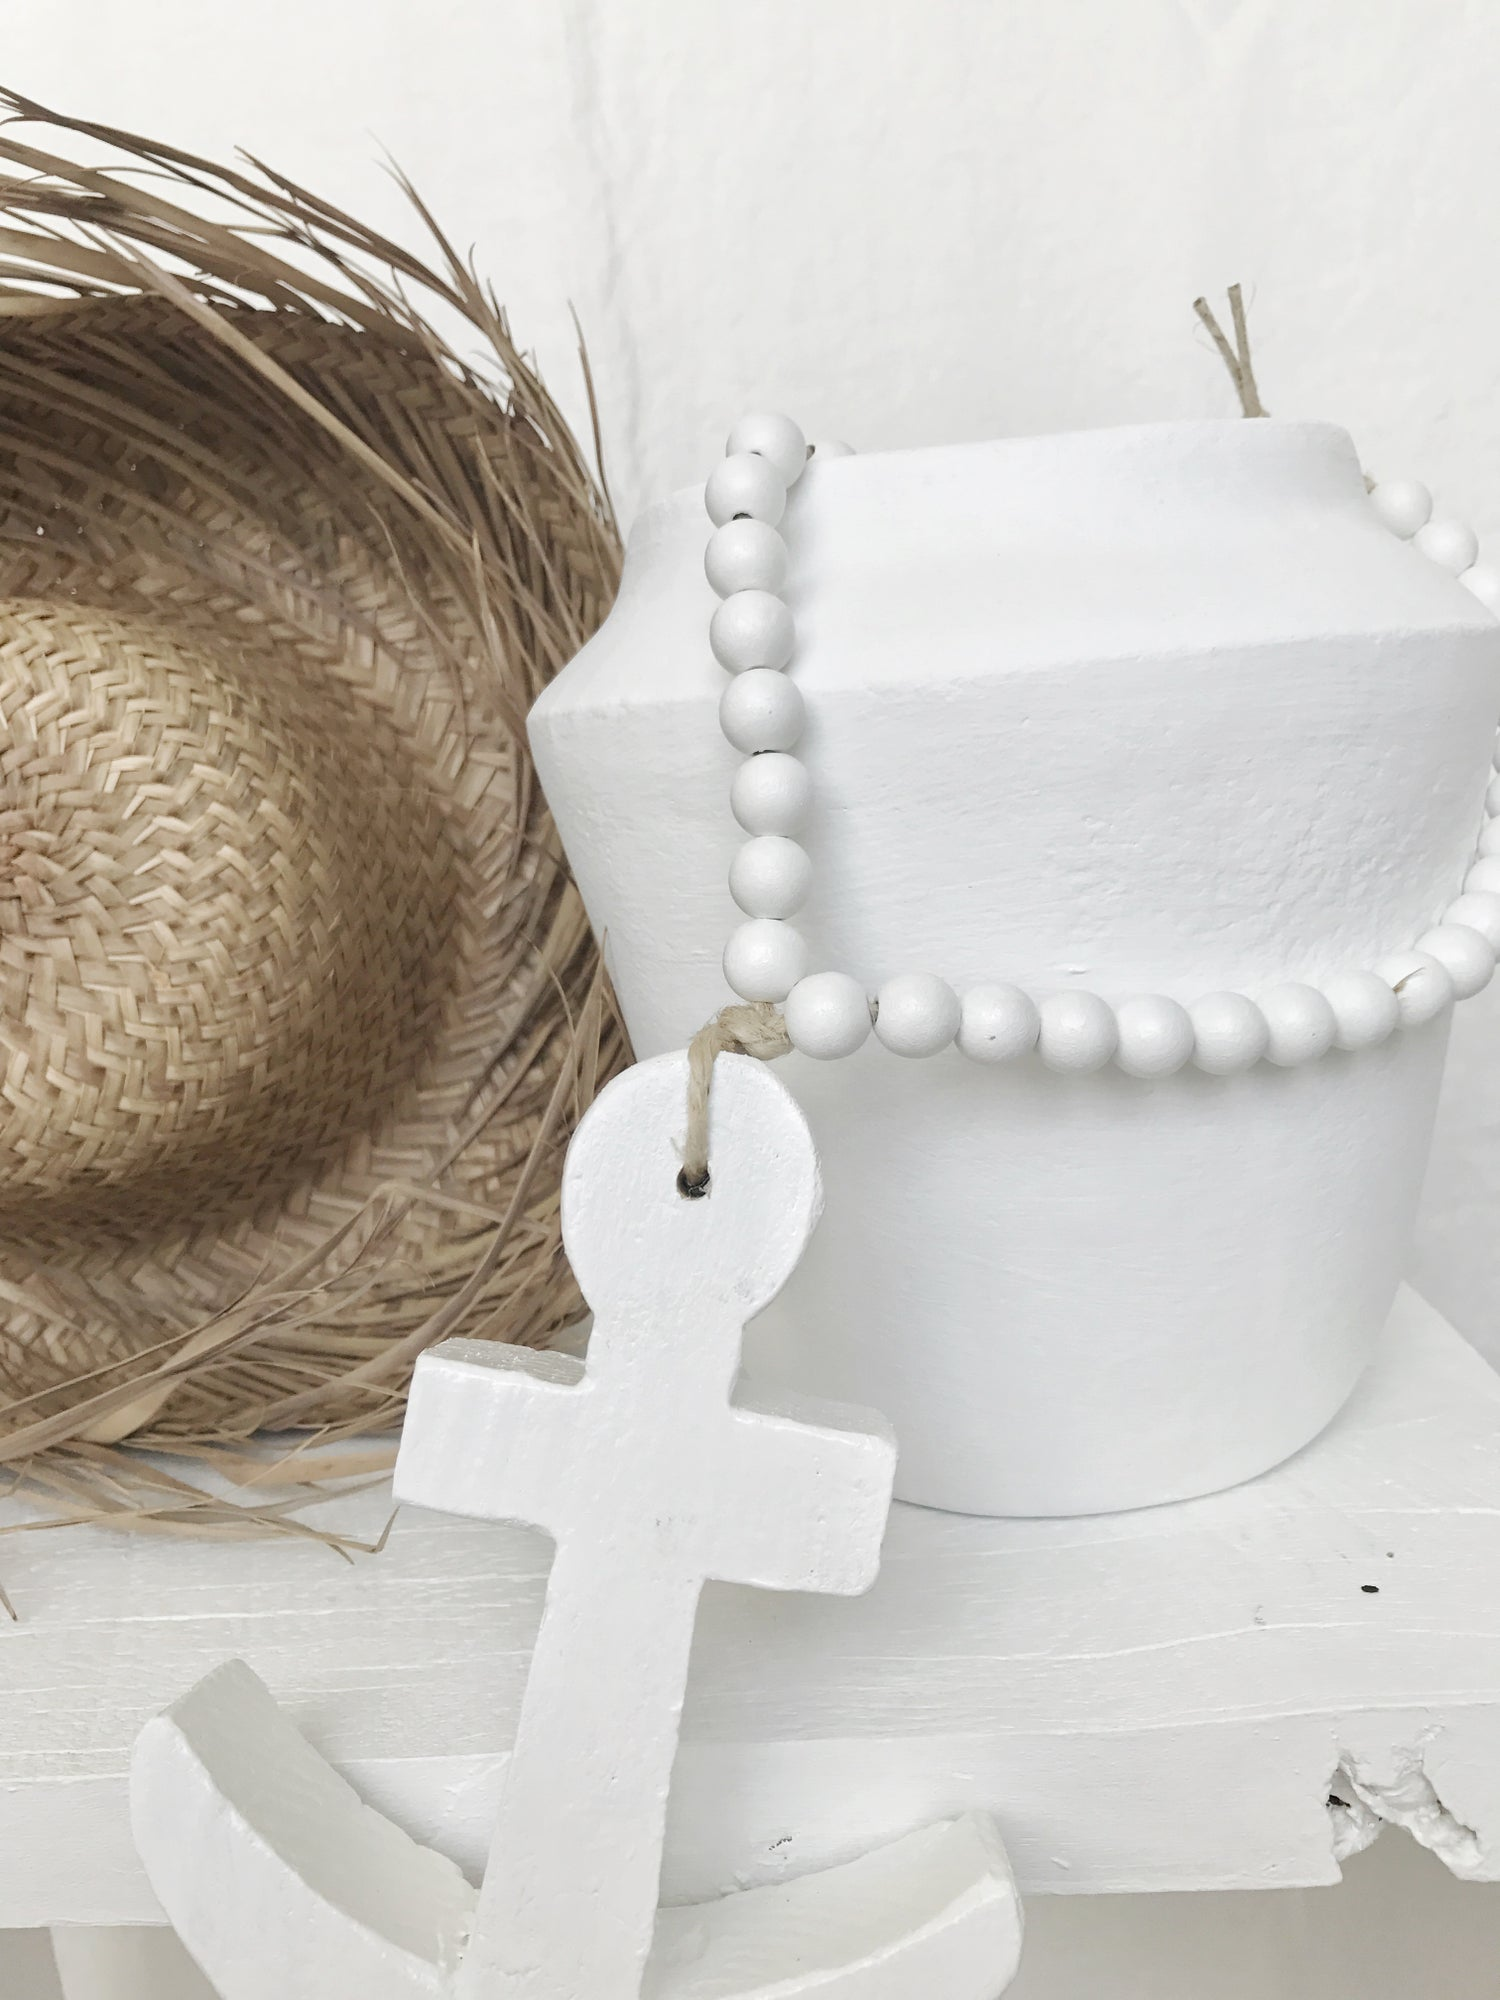 Image of Reclaimed Love Bead - White Beads and White Wooden Anchor